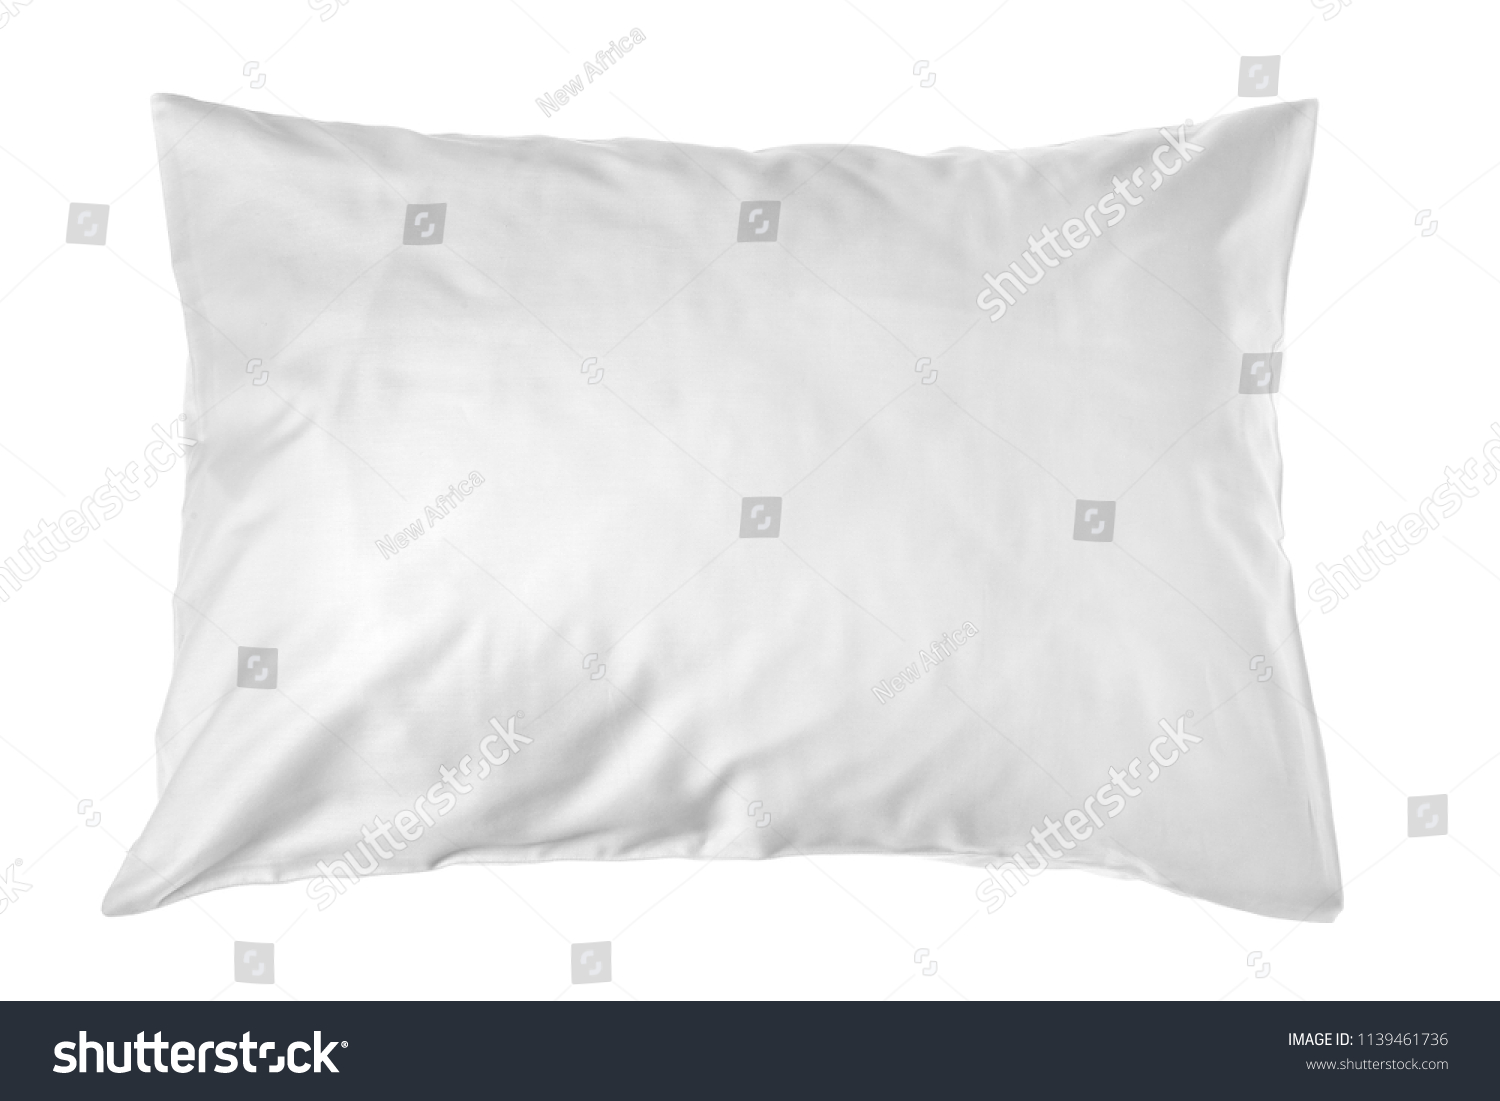 Blank soft pillow on white background